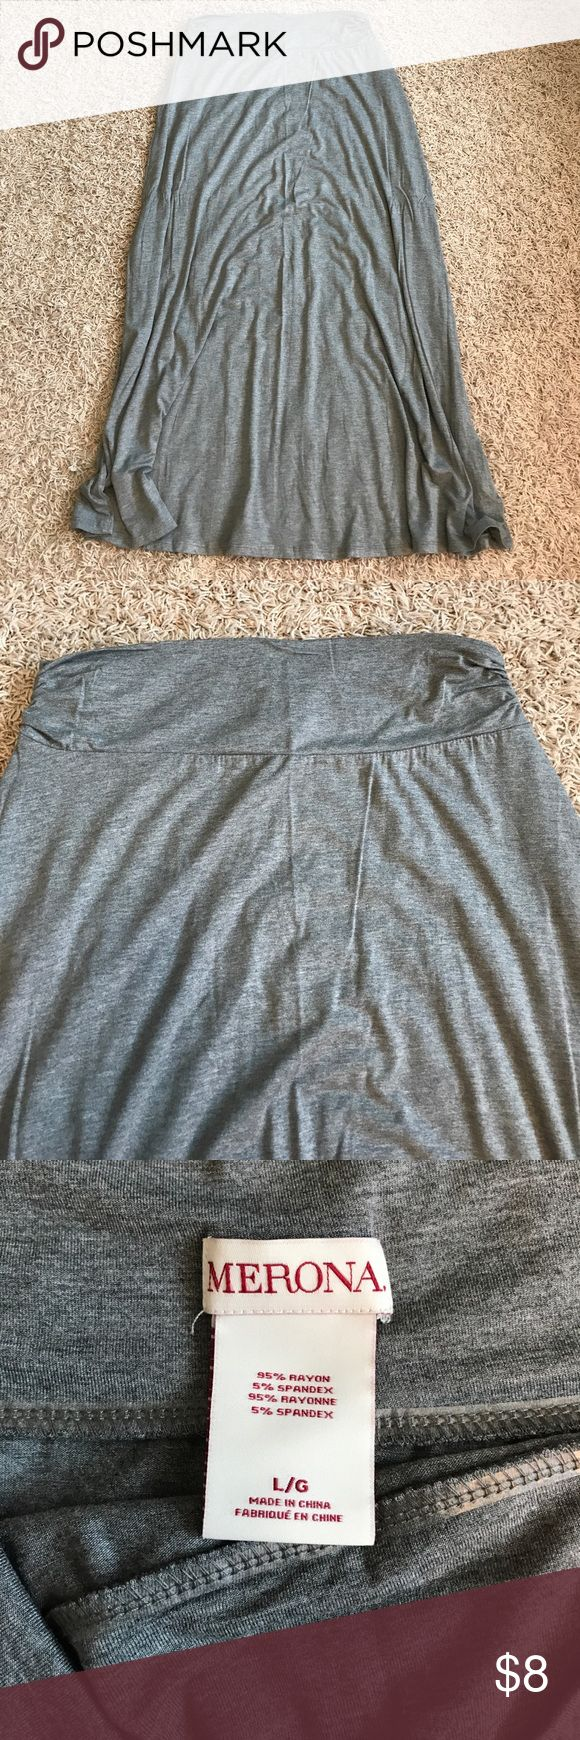 Merona Large gray Maxi Skirt Merona (Target brand) Large grey maxi skirt. Excellent condition. Runs big. Only worn a couple of times. Bundle and save with my other listings. Smoke free home. Merona Skirts Maxi